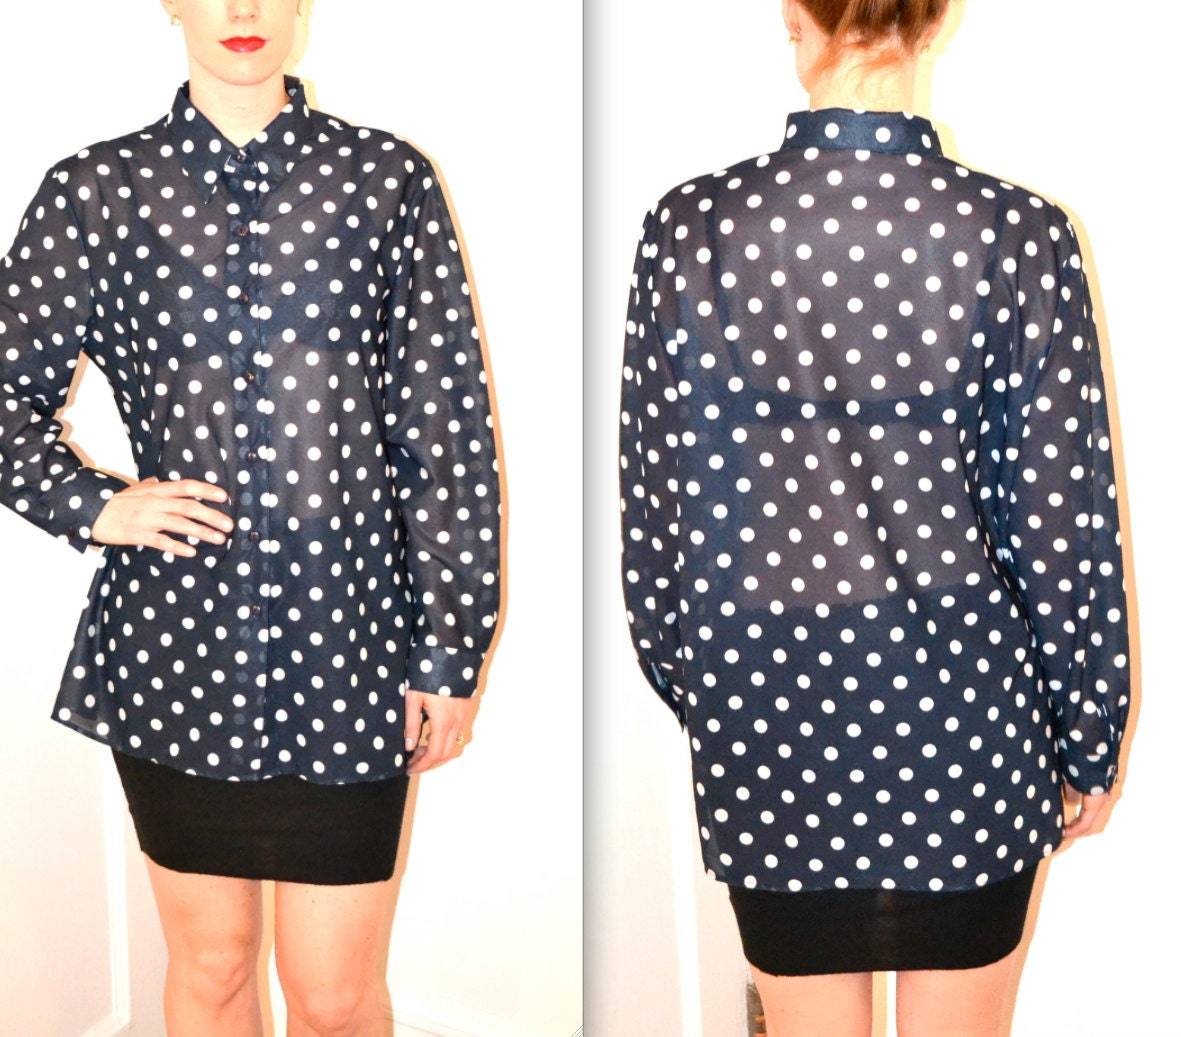 Blue Polka Dot Shirt Polka Dot Shirt